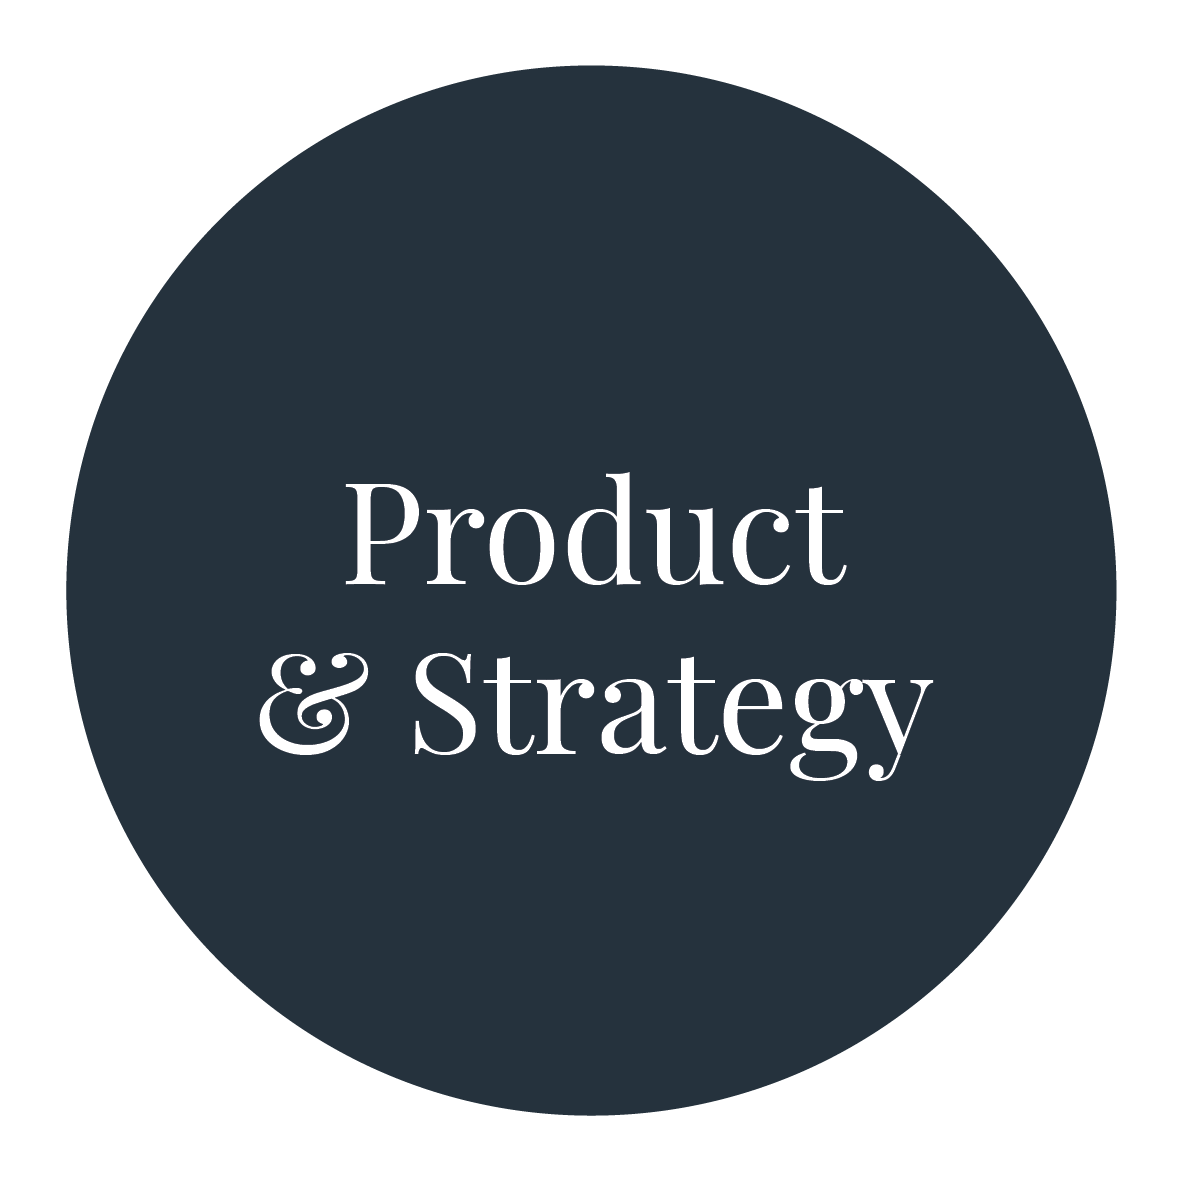 Products & Strategies